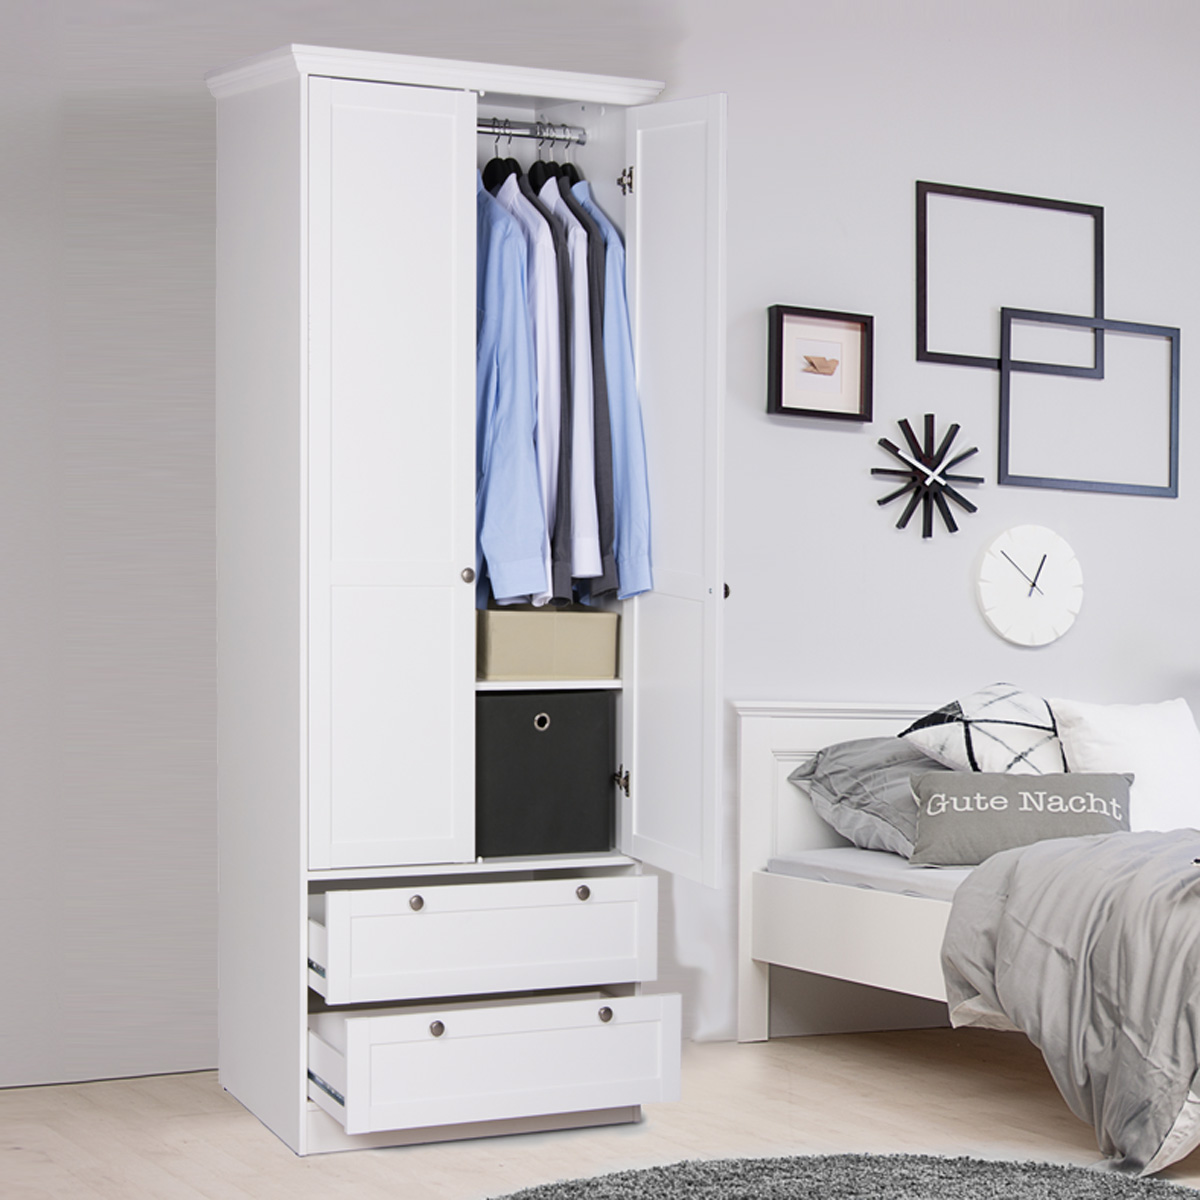 ikea aspelund kleiderschrank zweit rig. Black Bedroom Furniture Sets. Home Design Ideas